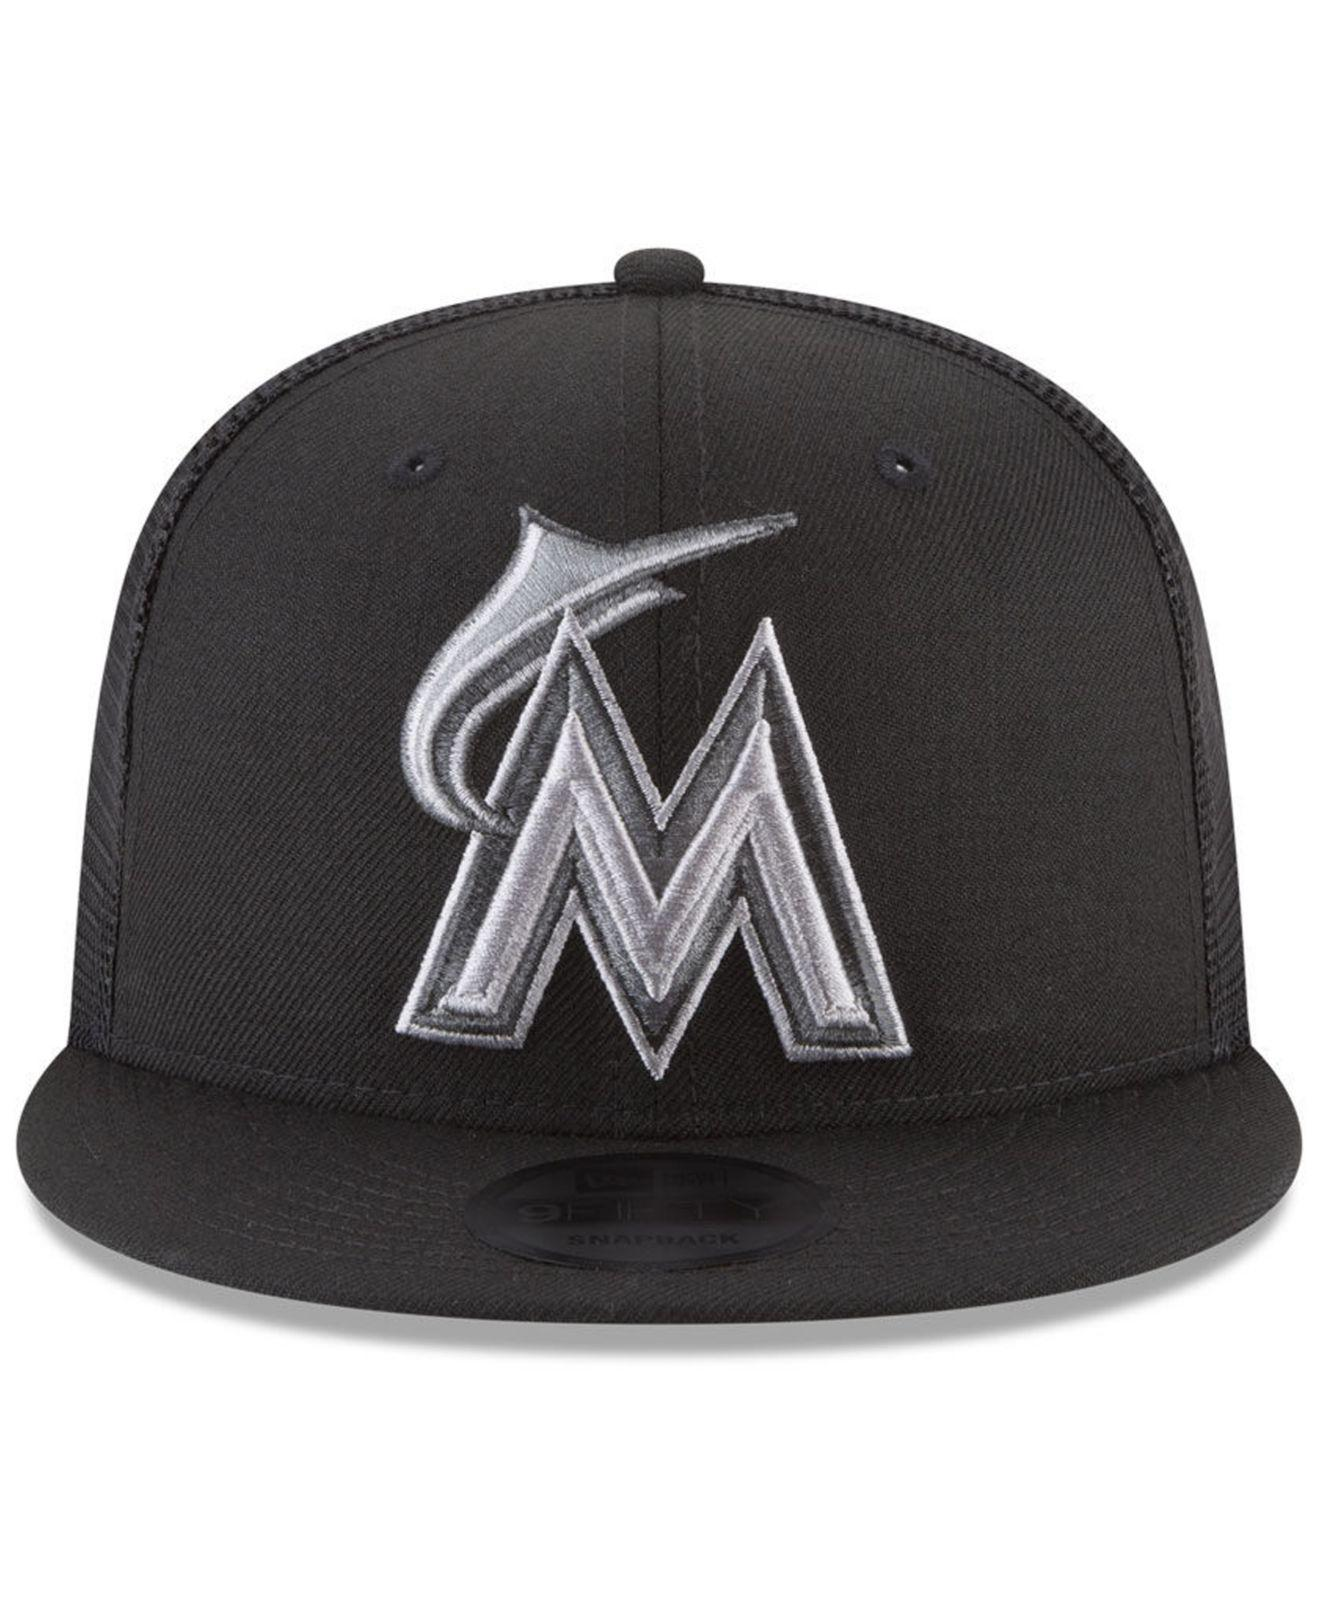 01bf6d9b047 ... italy lyst ktz miami marlins blackout mesh 9fifty snapback cap in black  for men 02176 3dea8